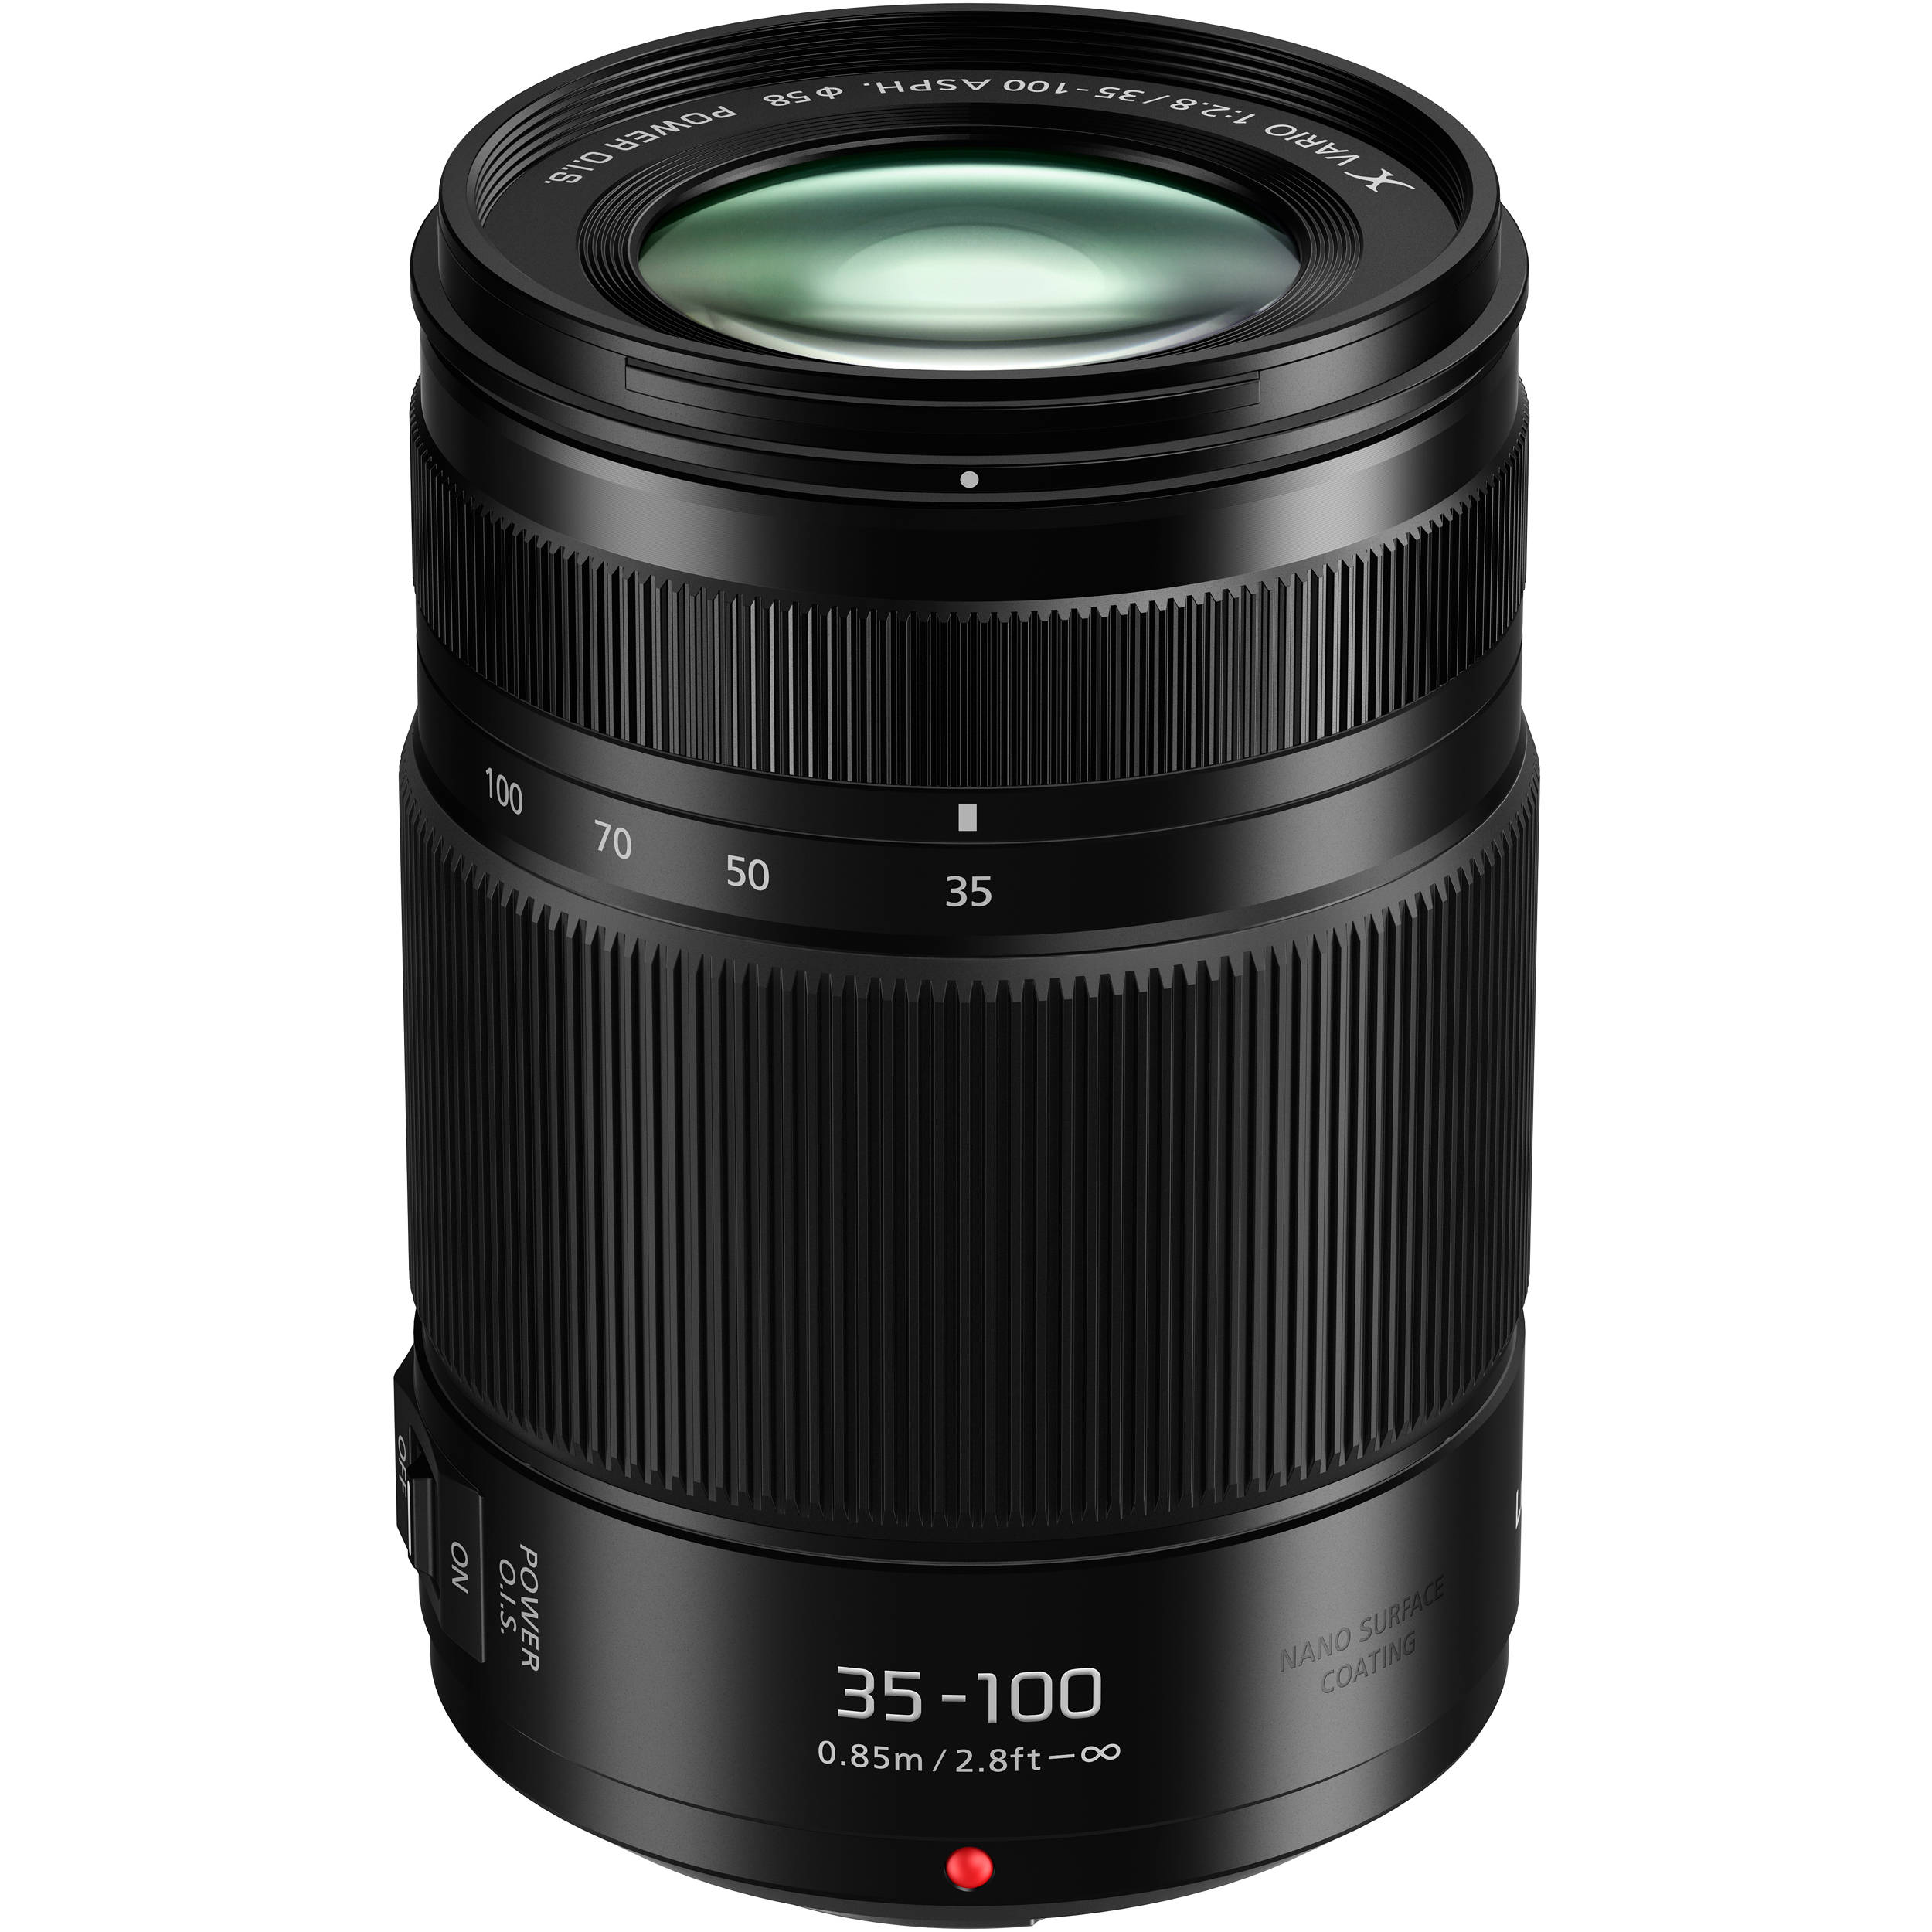 Panasonic Lumix 35-100mm f2.8 II